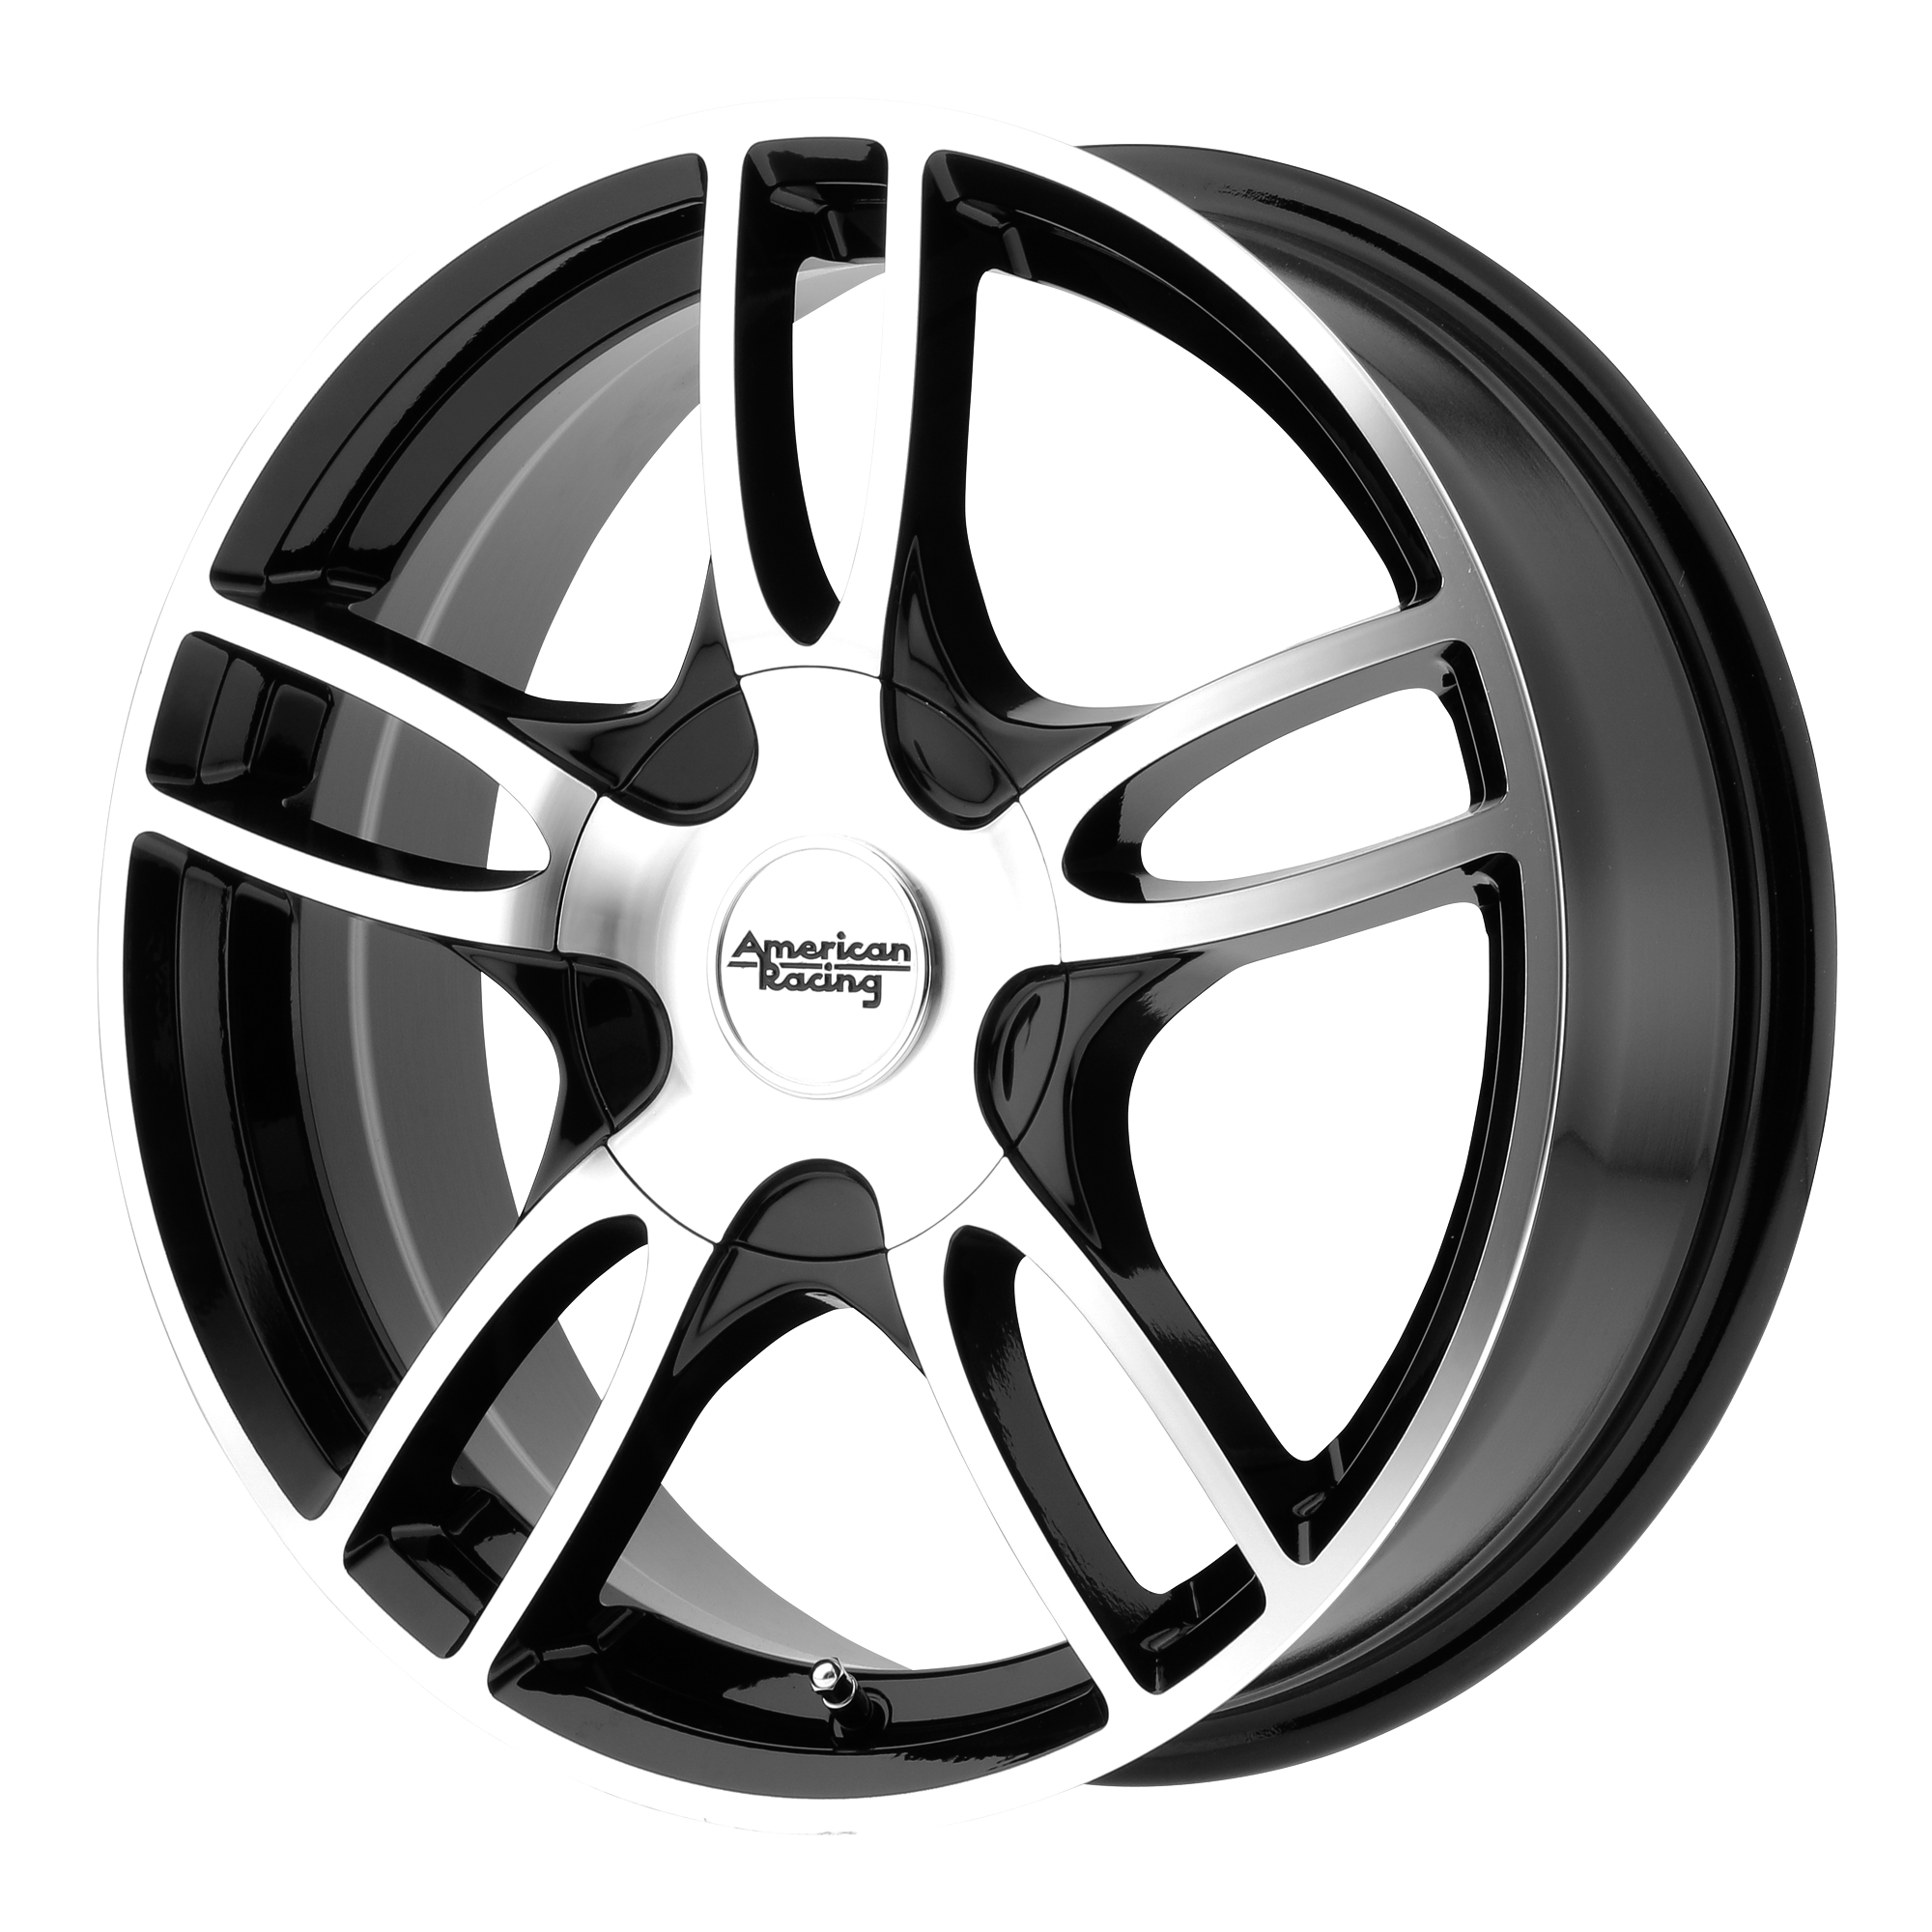 American Racing Wheels AR919 ESTRELLA 2 Black